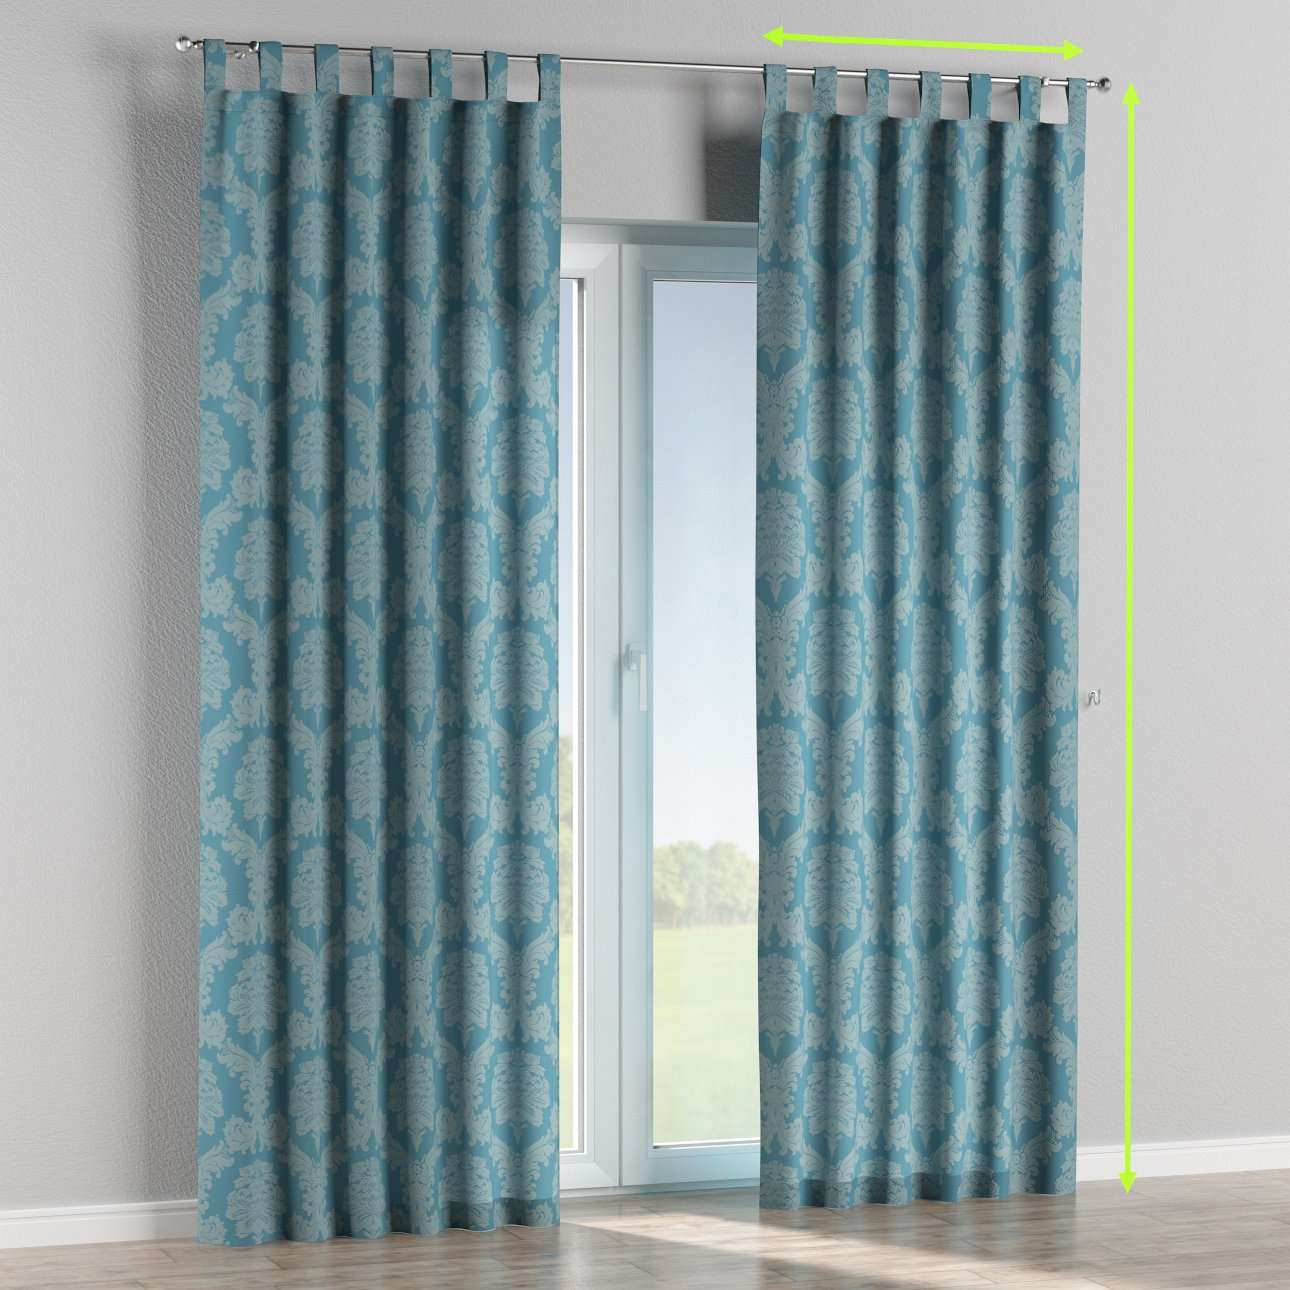 Tab top curtains in collection Damasco, fabric: 613-67